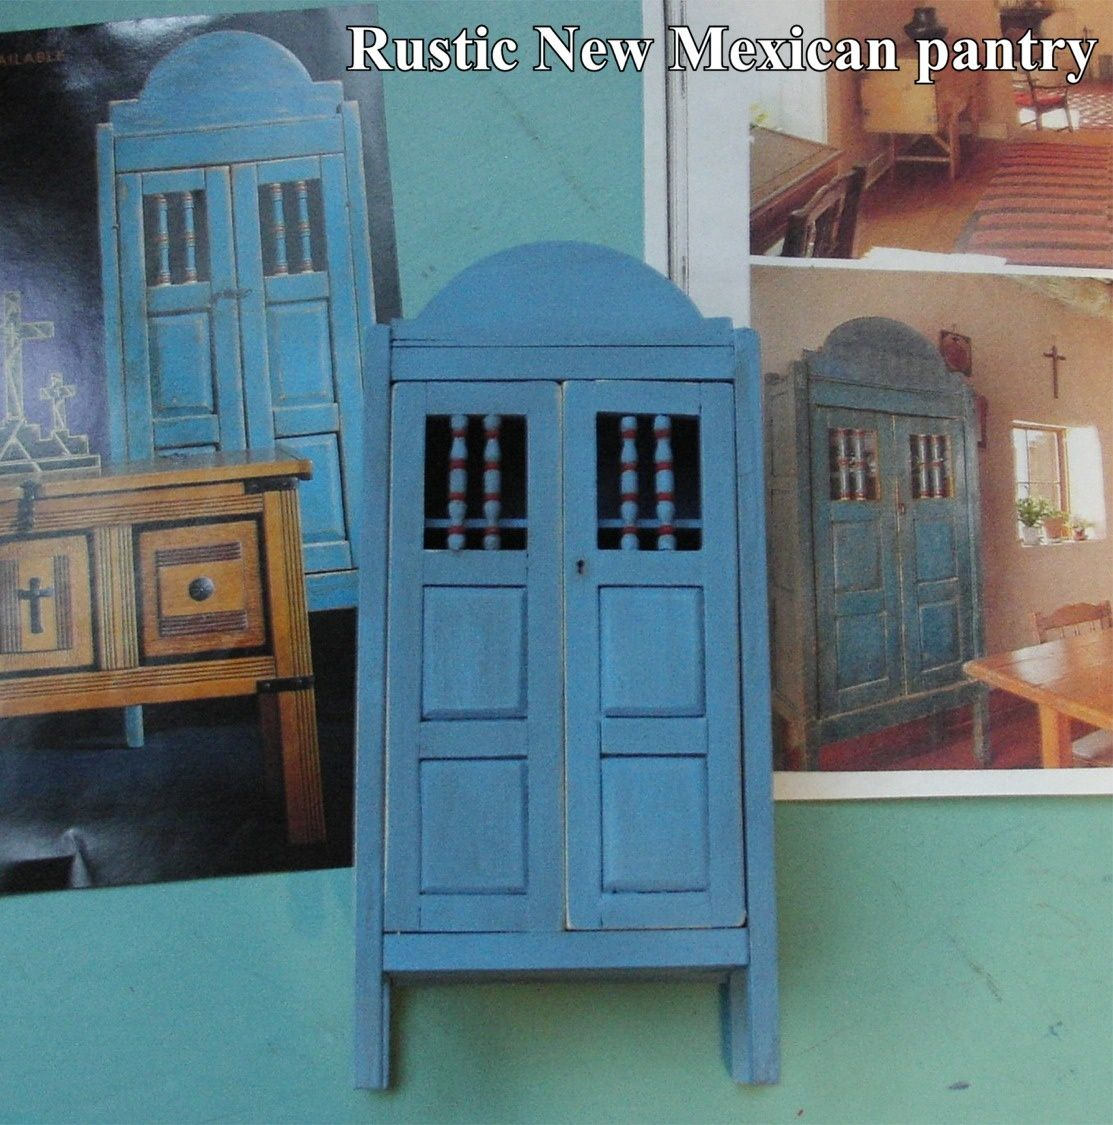 Miniature New Mexican cupboard made from photos.